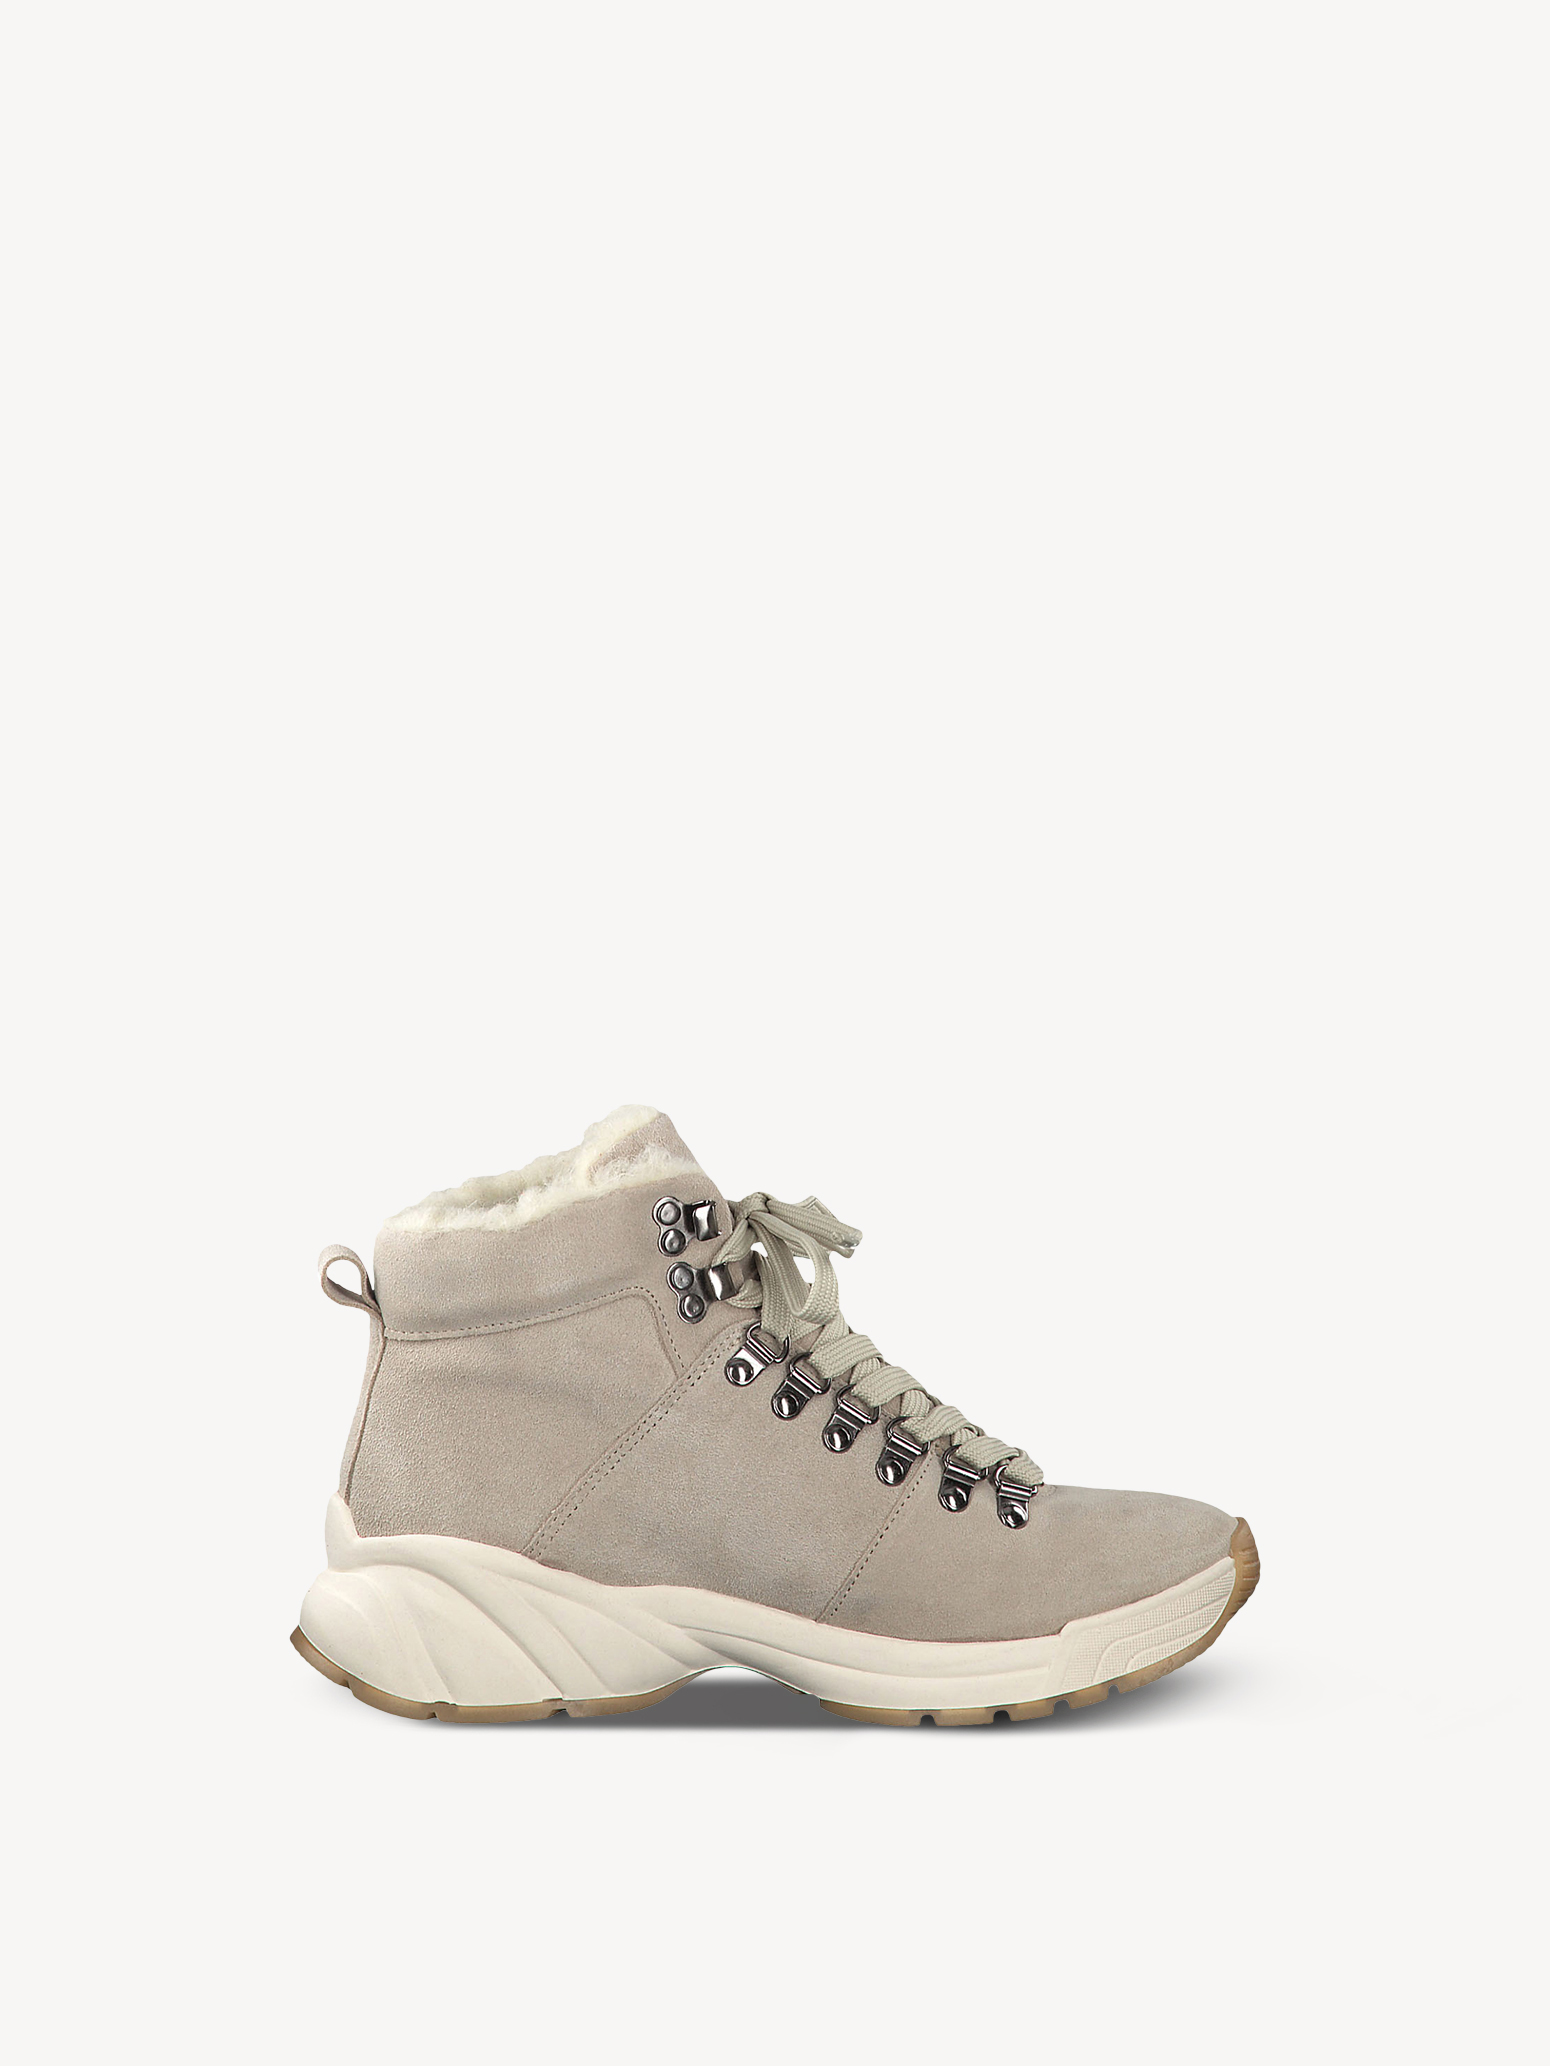 Leather Bootie - beige, BEIGE, hi-res